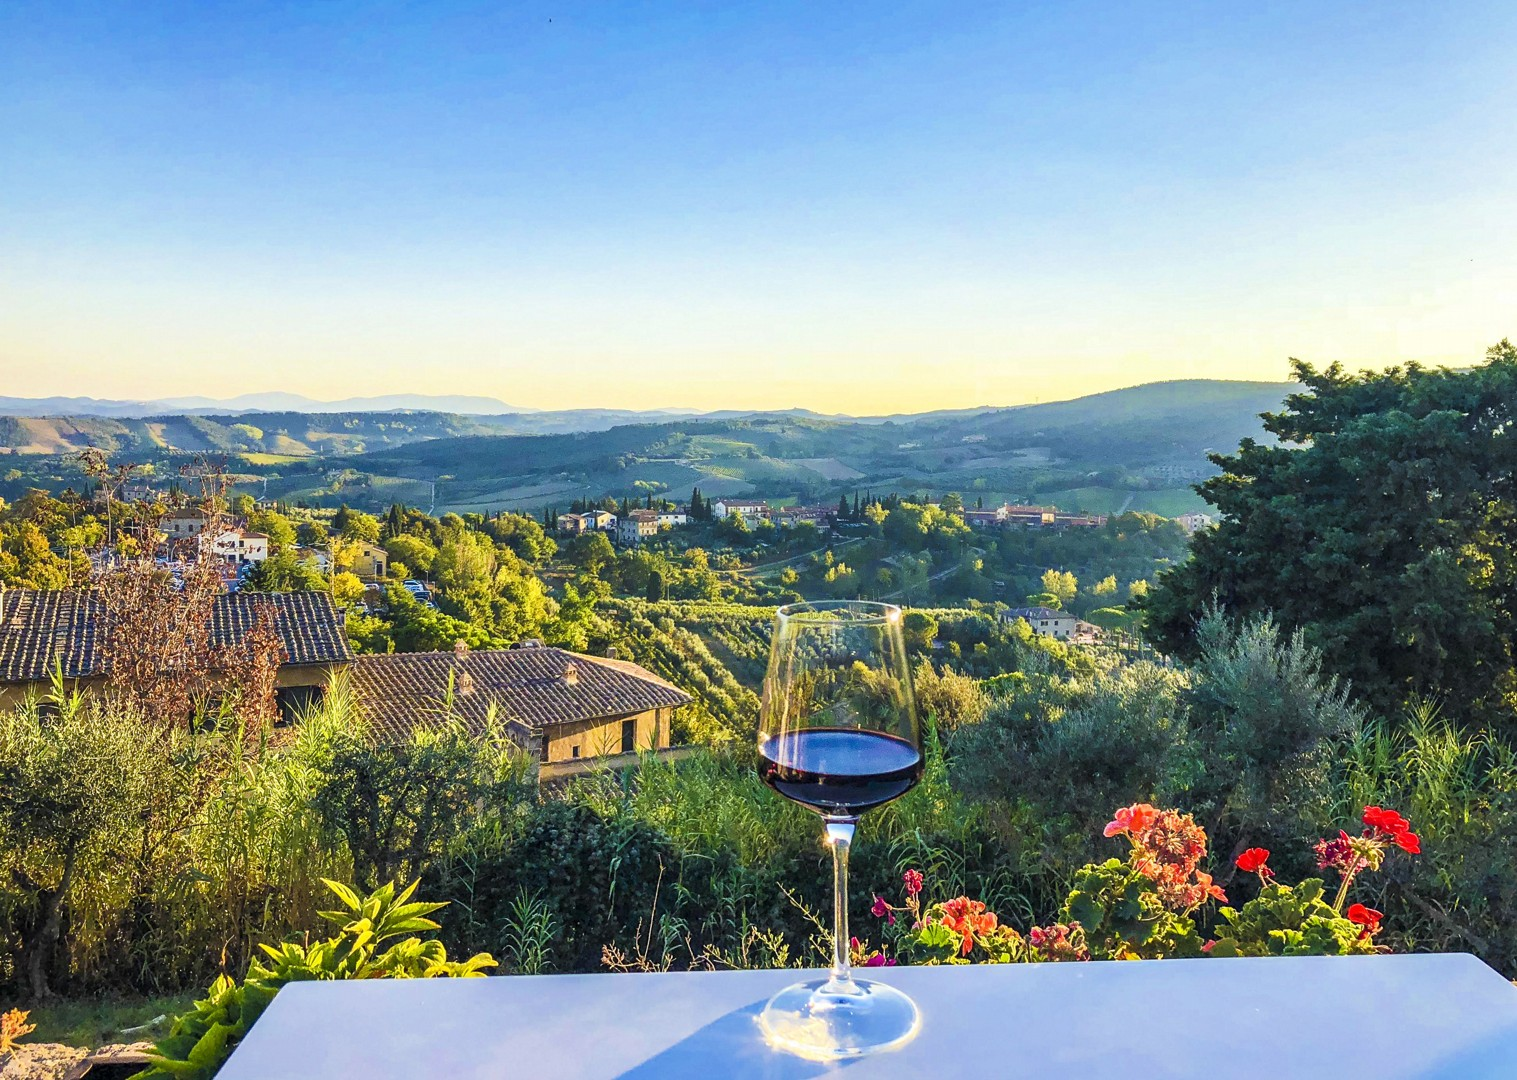 fine-italian-wines-chianti-montepulciano-montalcino-stunning-scenery-cycling-holiday.jpg - Italy - Classic Tuscany - Self-Guided Leisure Cycling Holiday - Leisure Cycling